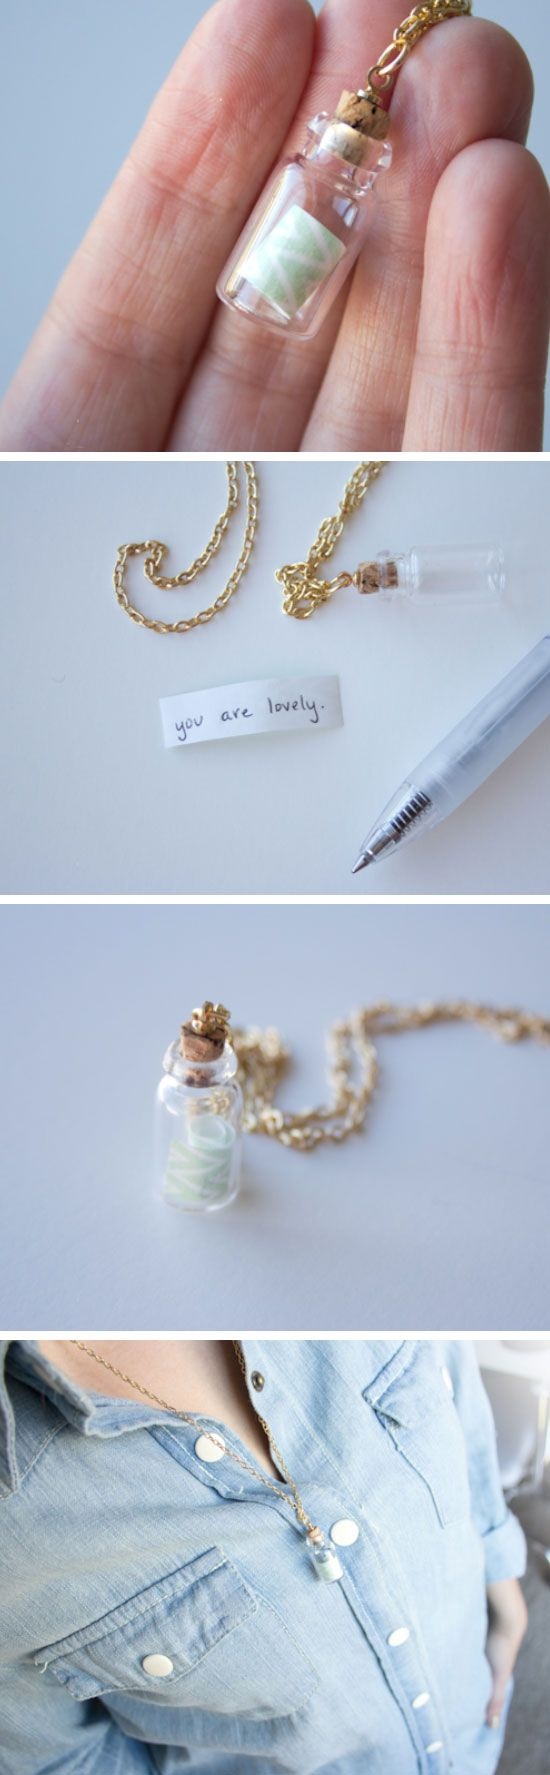 DIY Message in a Bottle Necklace | DIY Mothers Day Gifts from Daughter...